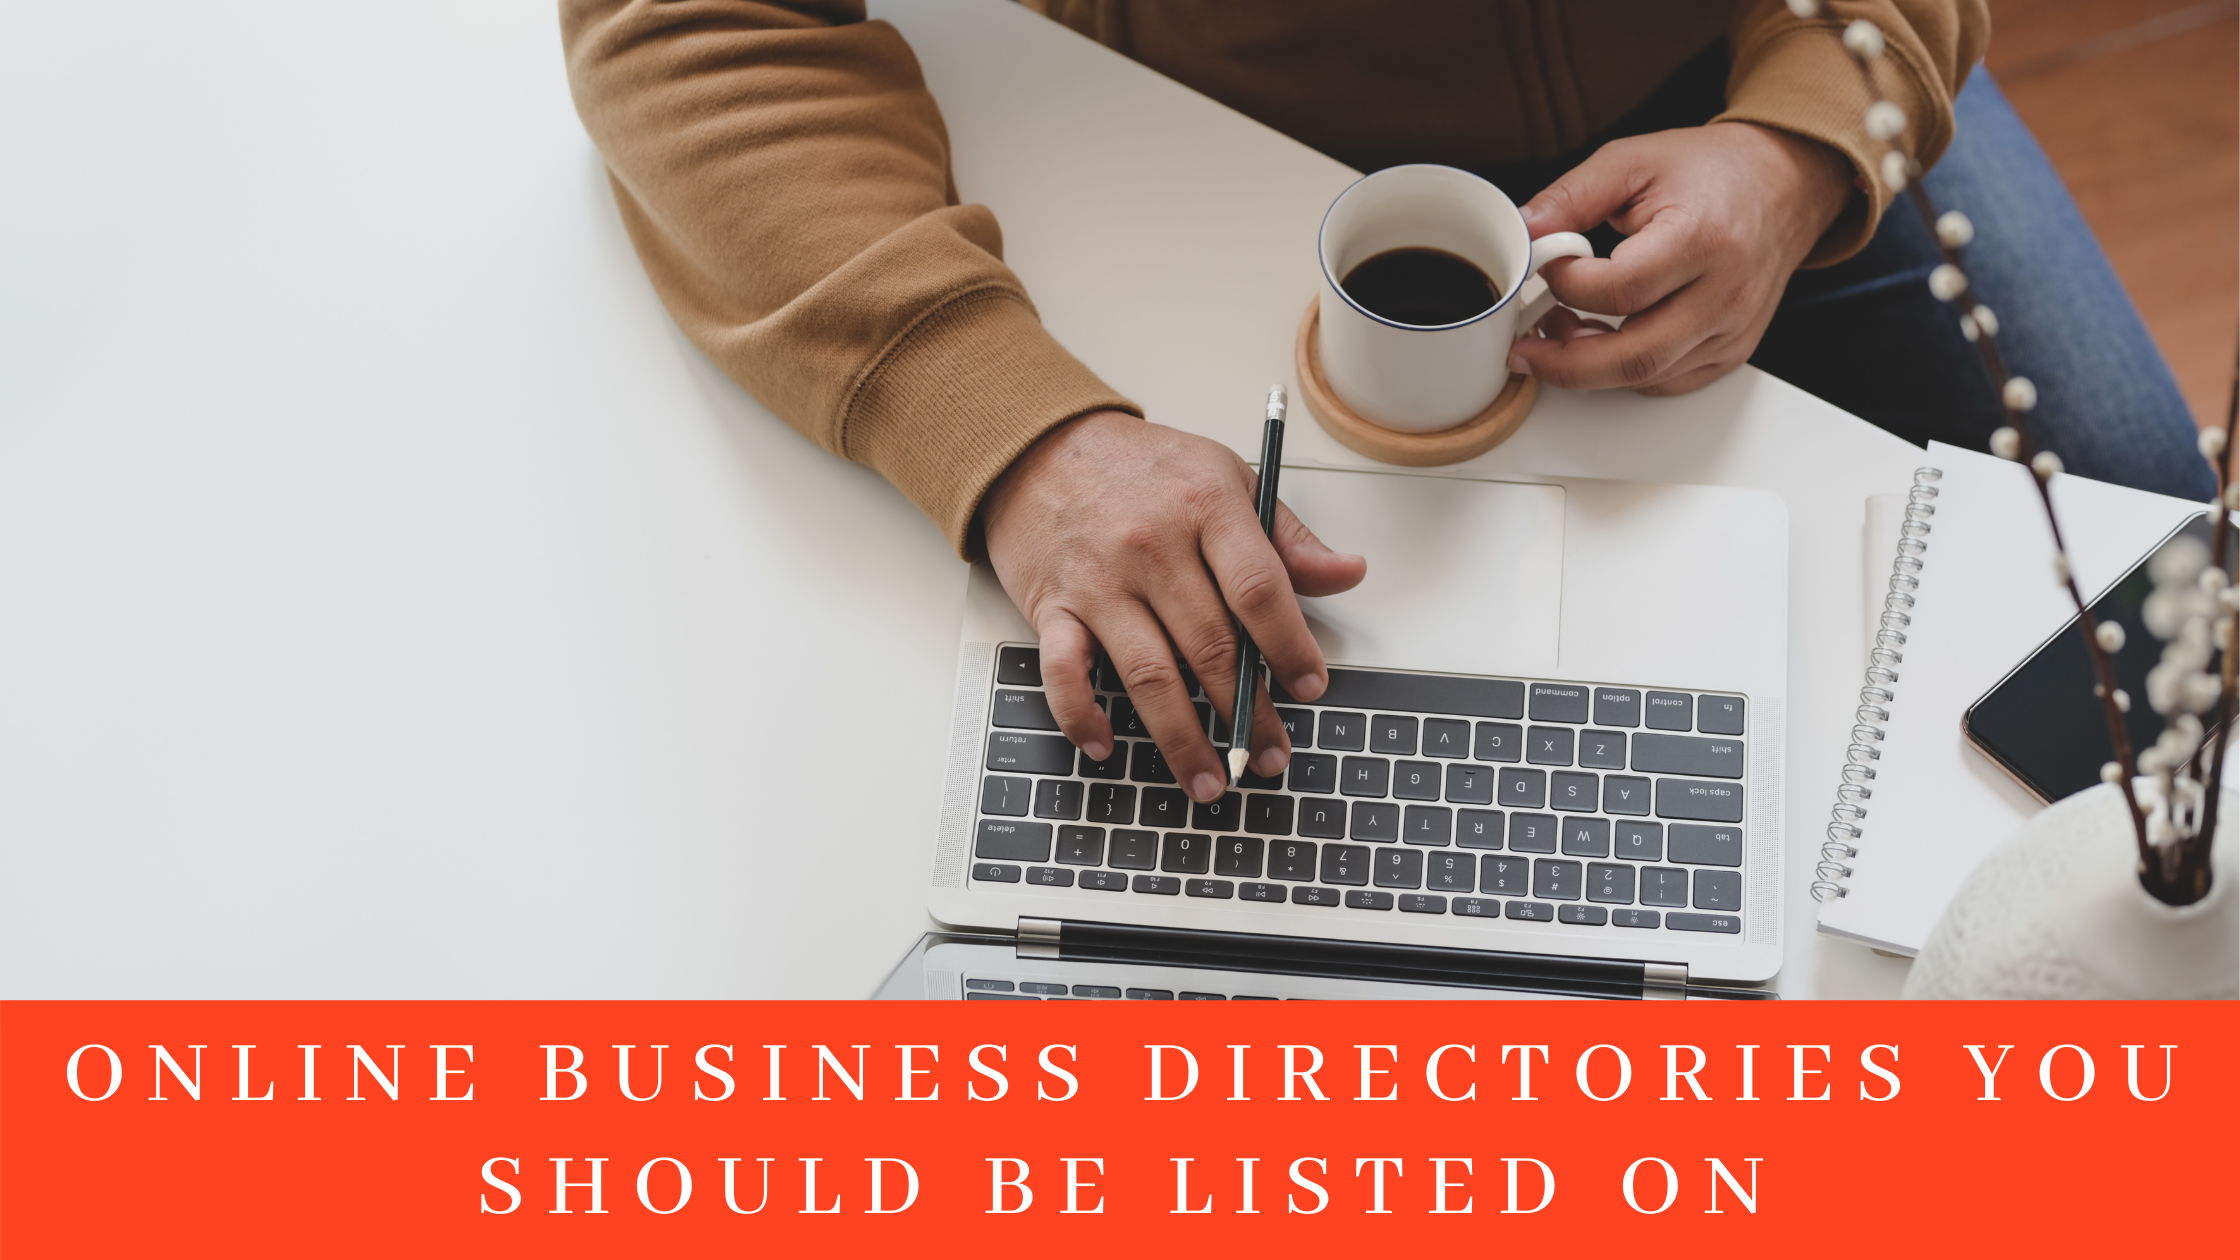 online business directories you should be listed on